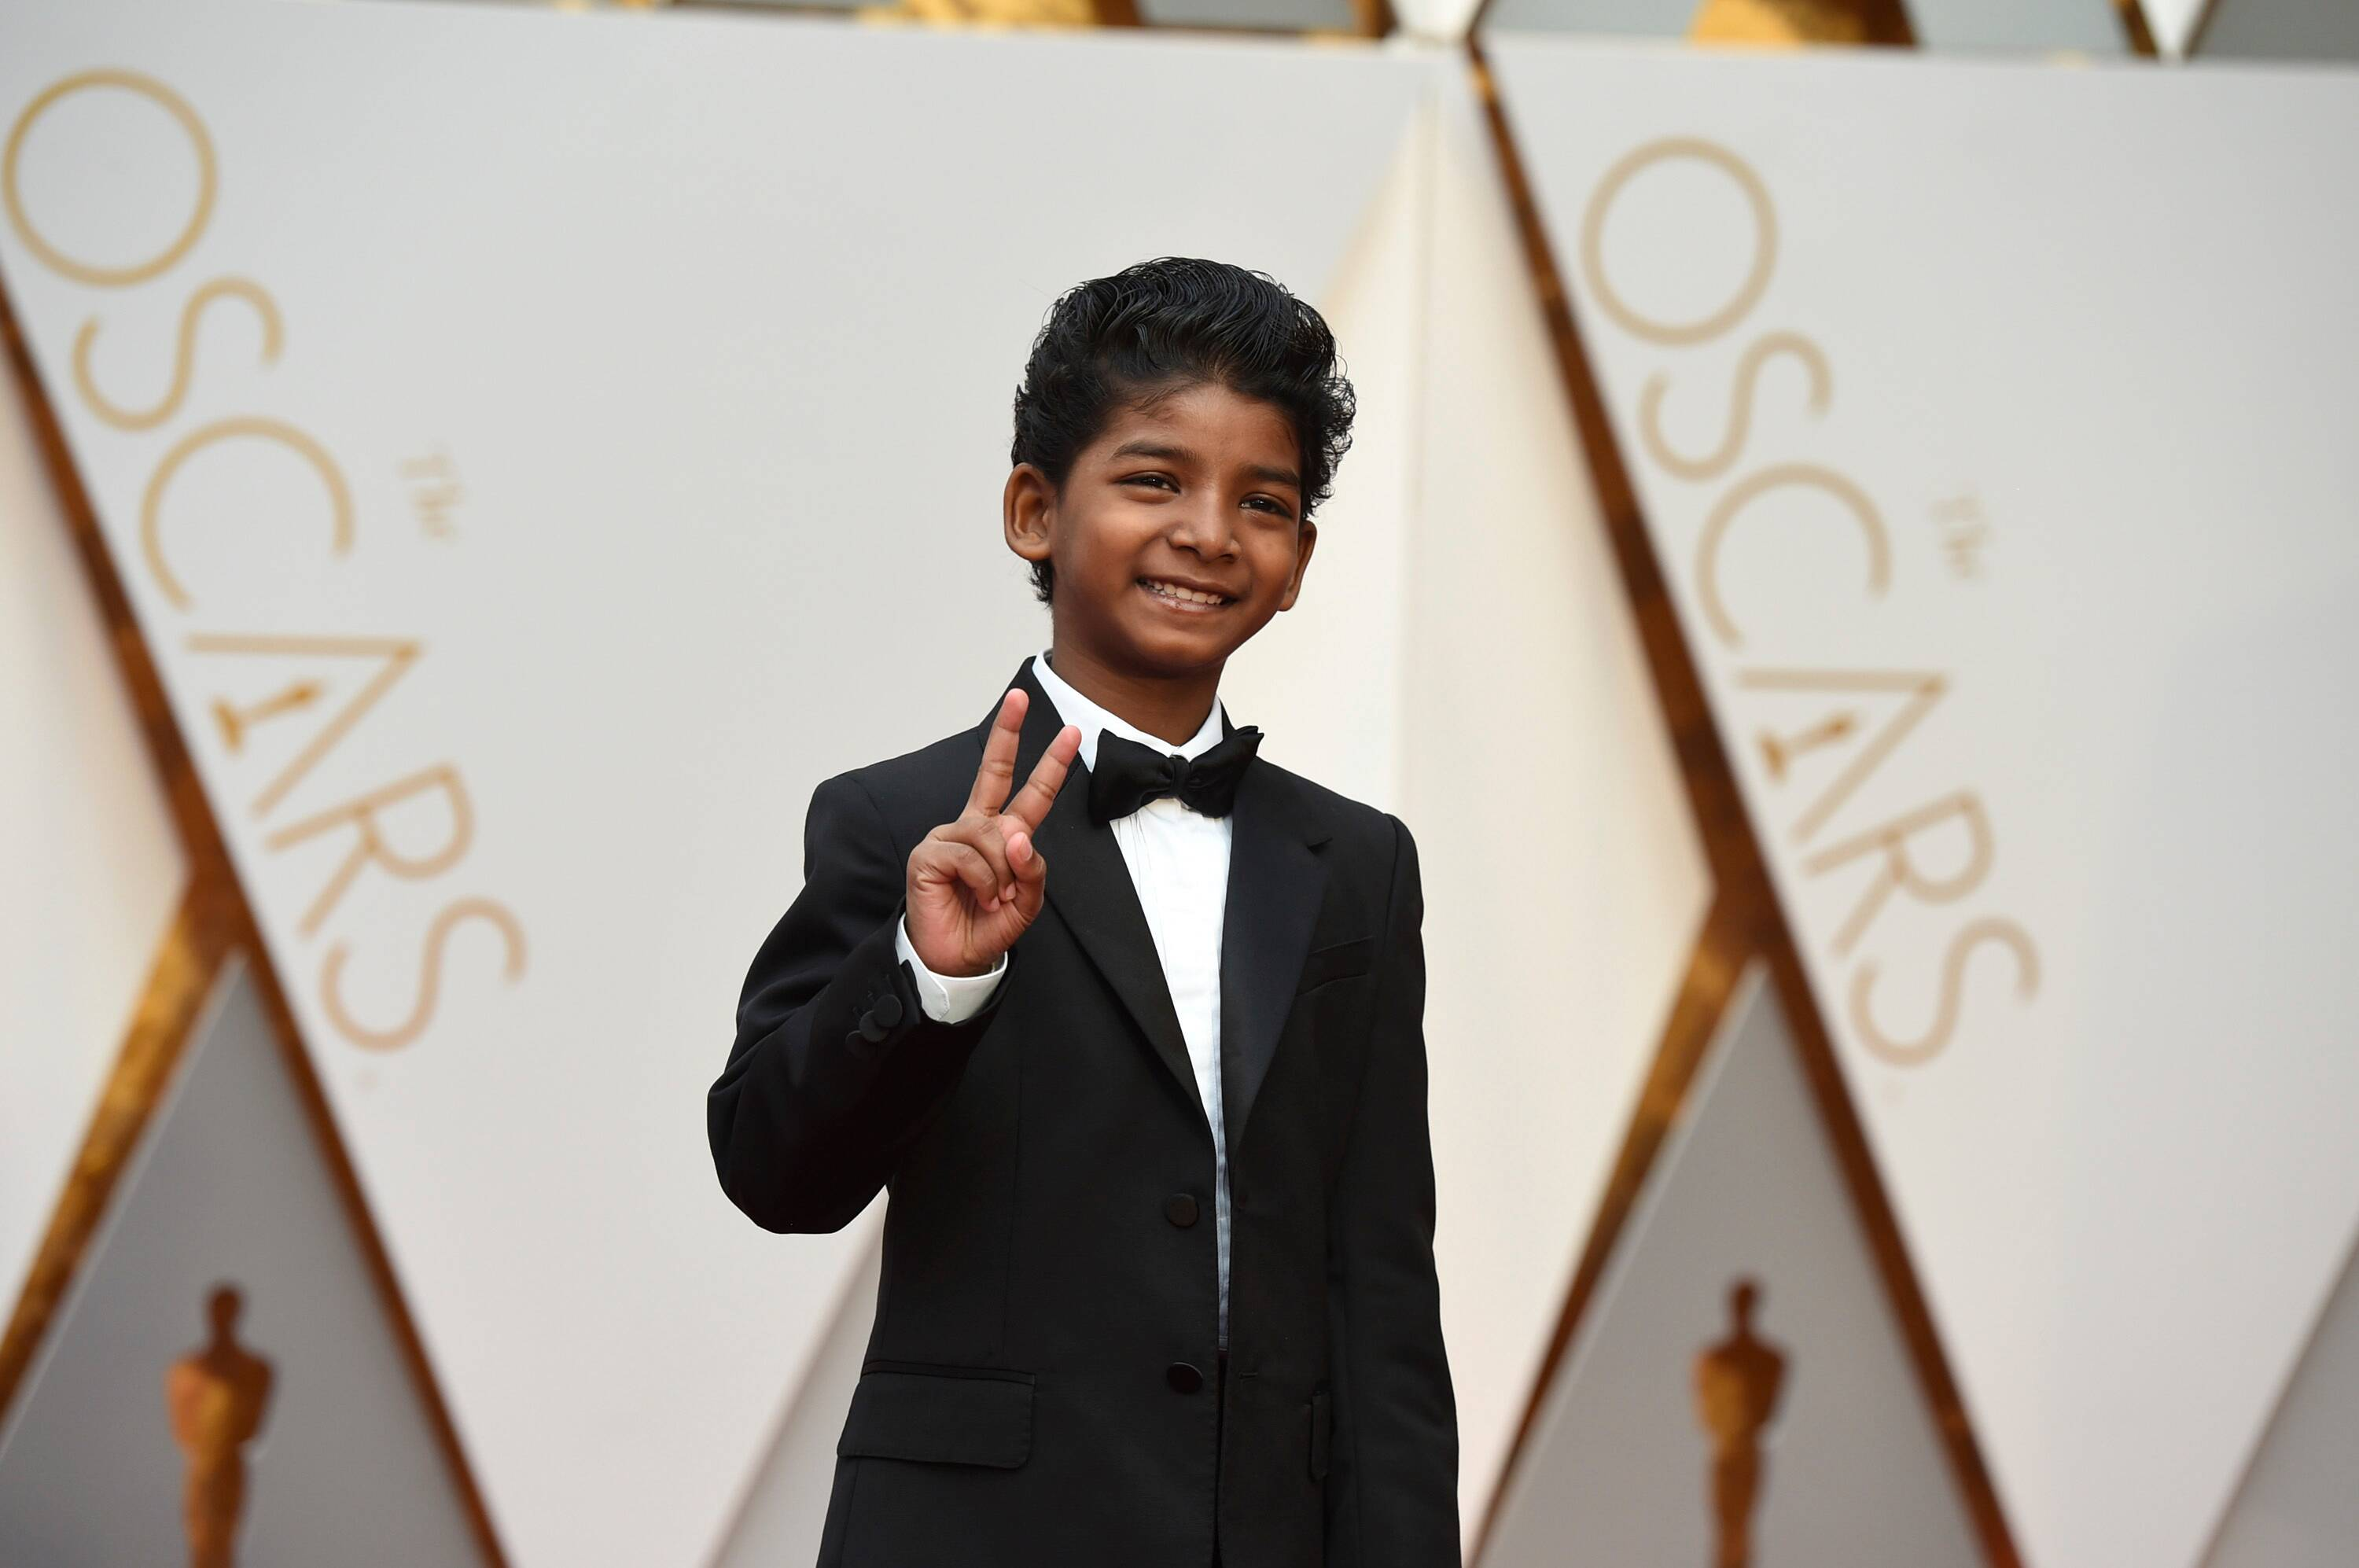 Oscars 2017 Dev Patel Attends Oscars With Mother Thanks Lion Child Star Sunny Pawar See Pics 4545665 also Most Popular Sexiest Turkish Actresses Top 10 Beautiful Richest Highest Paid List also Disney Villains Perfume Bottles 94203 moreover Odd Squad Star Sean Kyer Talks Big Win 2016 Leo Awards Dream Role as well Oscars 2017 Ellen Degeneres Mocks Not Getting Nominated 20170130. on oscar nomination list 2017